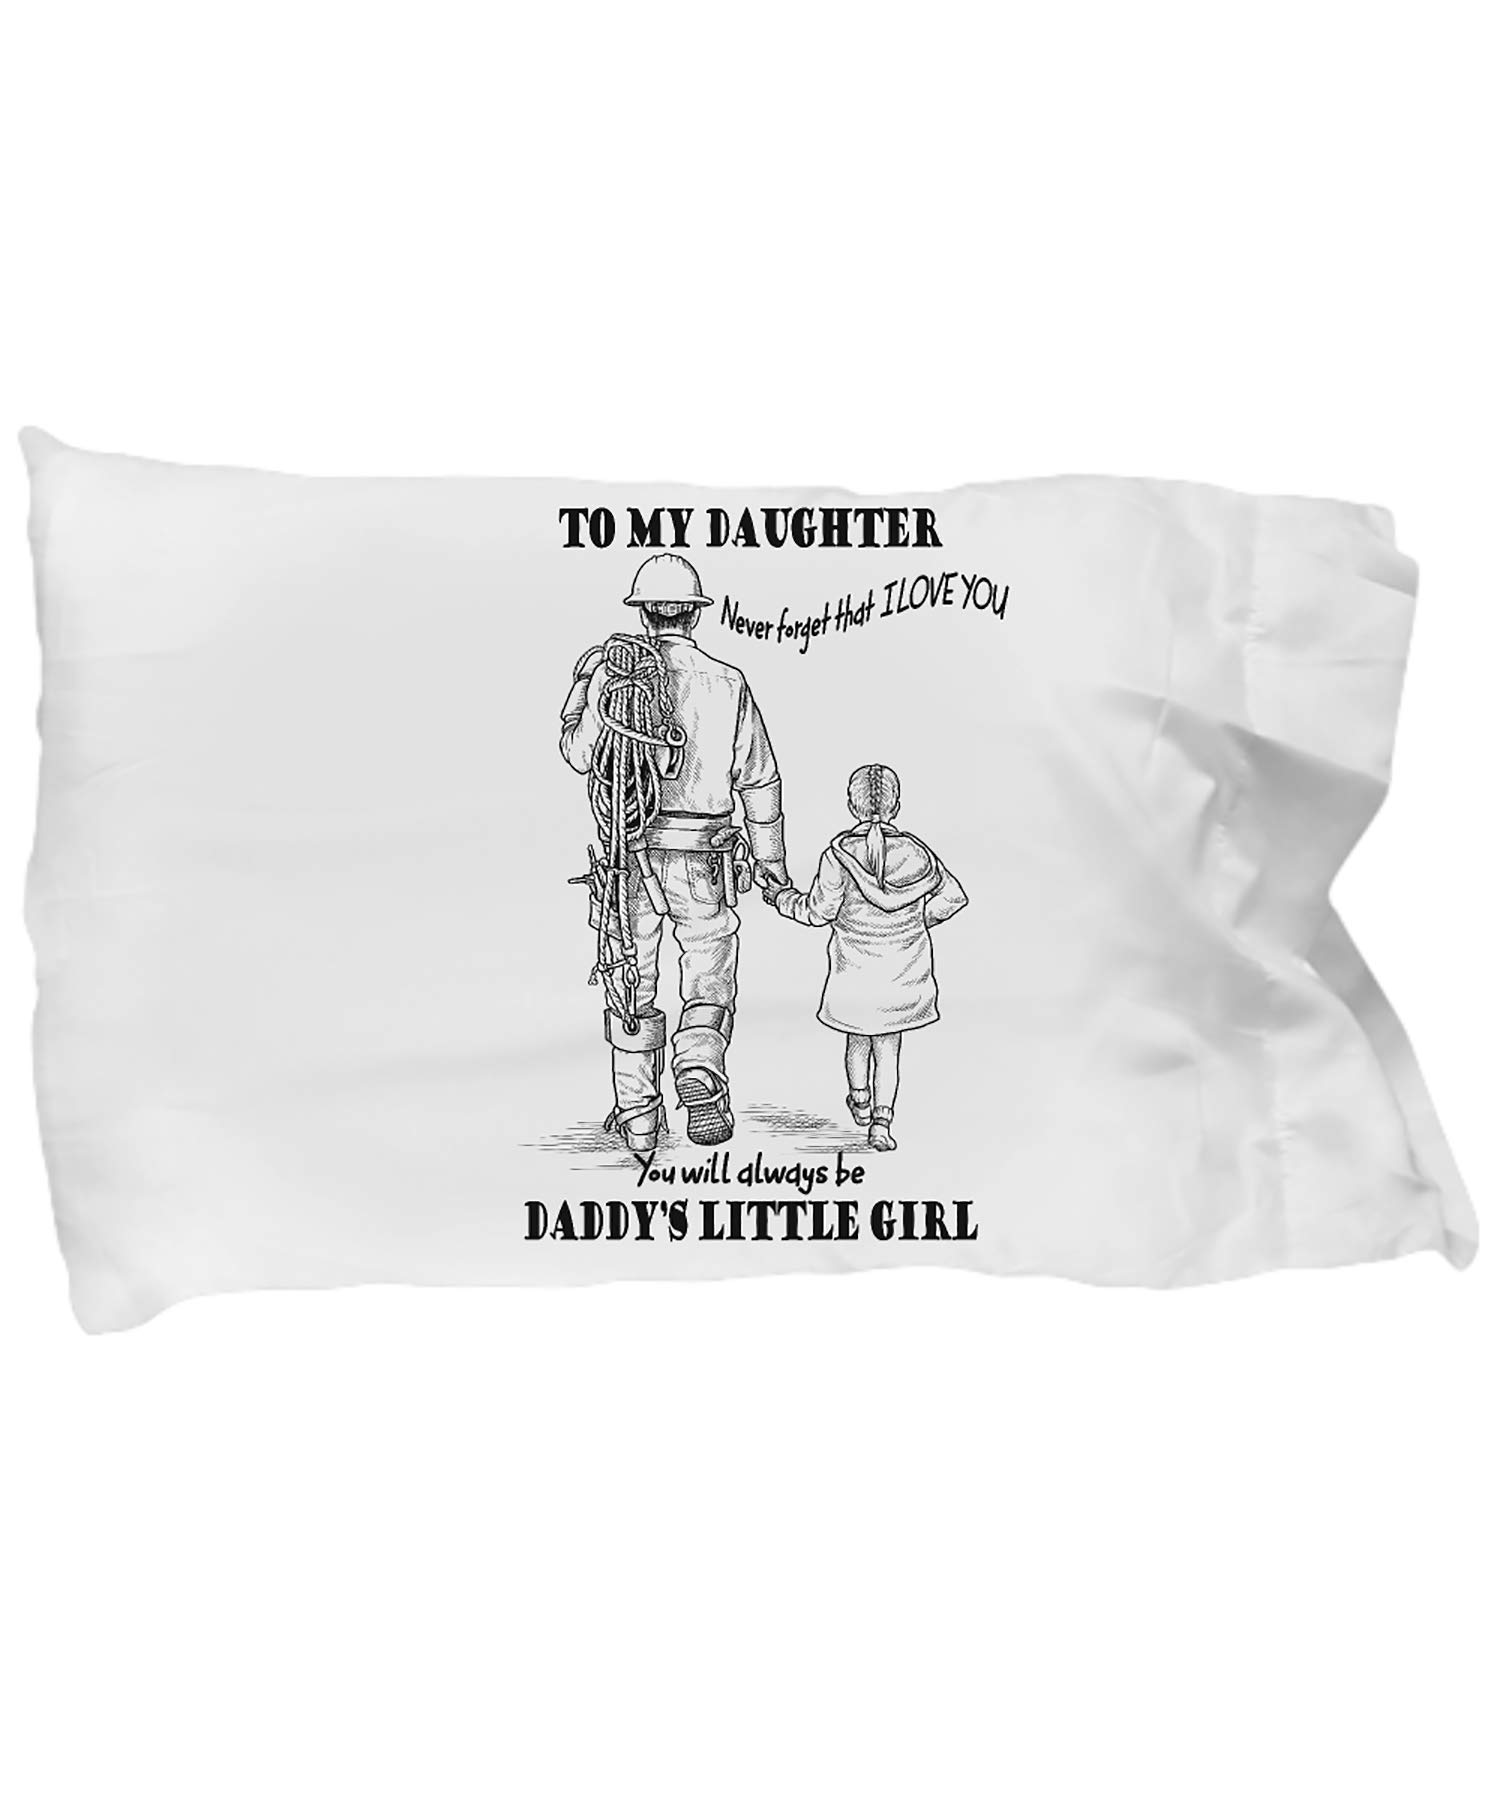 Lineman and Daughter Pillow Case - to My Daughter You Will Always Be Daddy's Littel Girl - Pillow Case by Best Gift